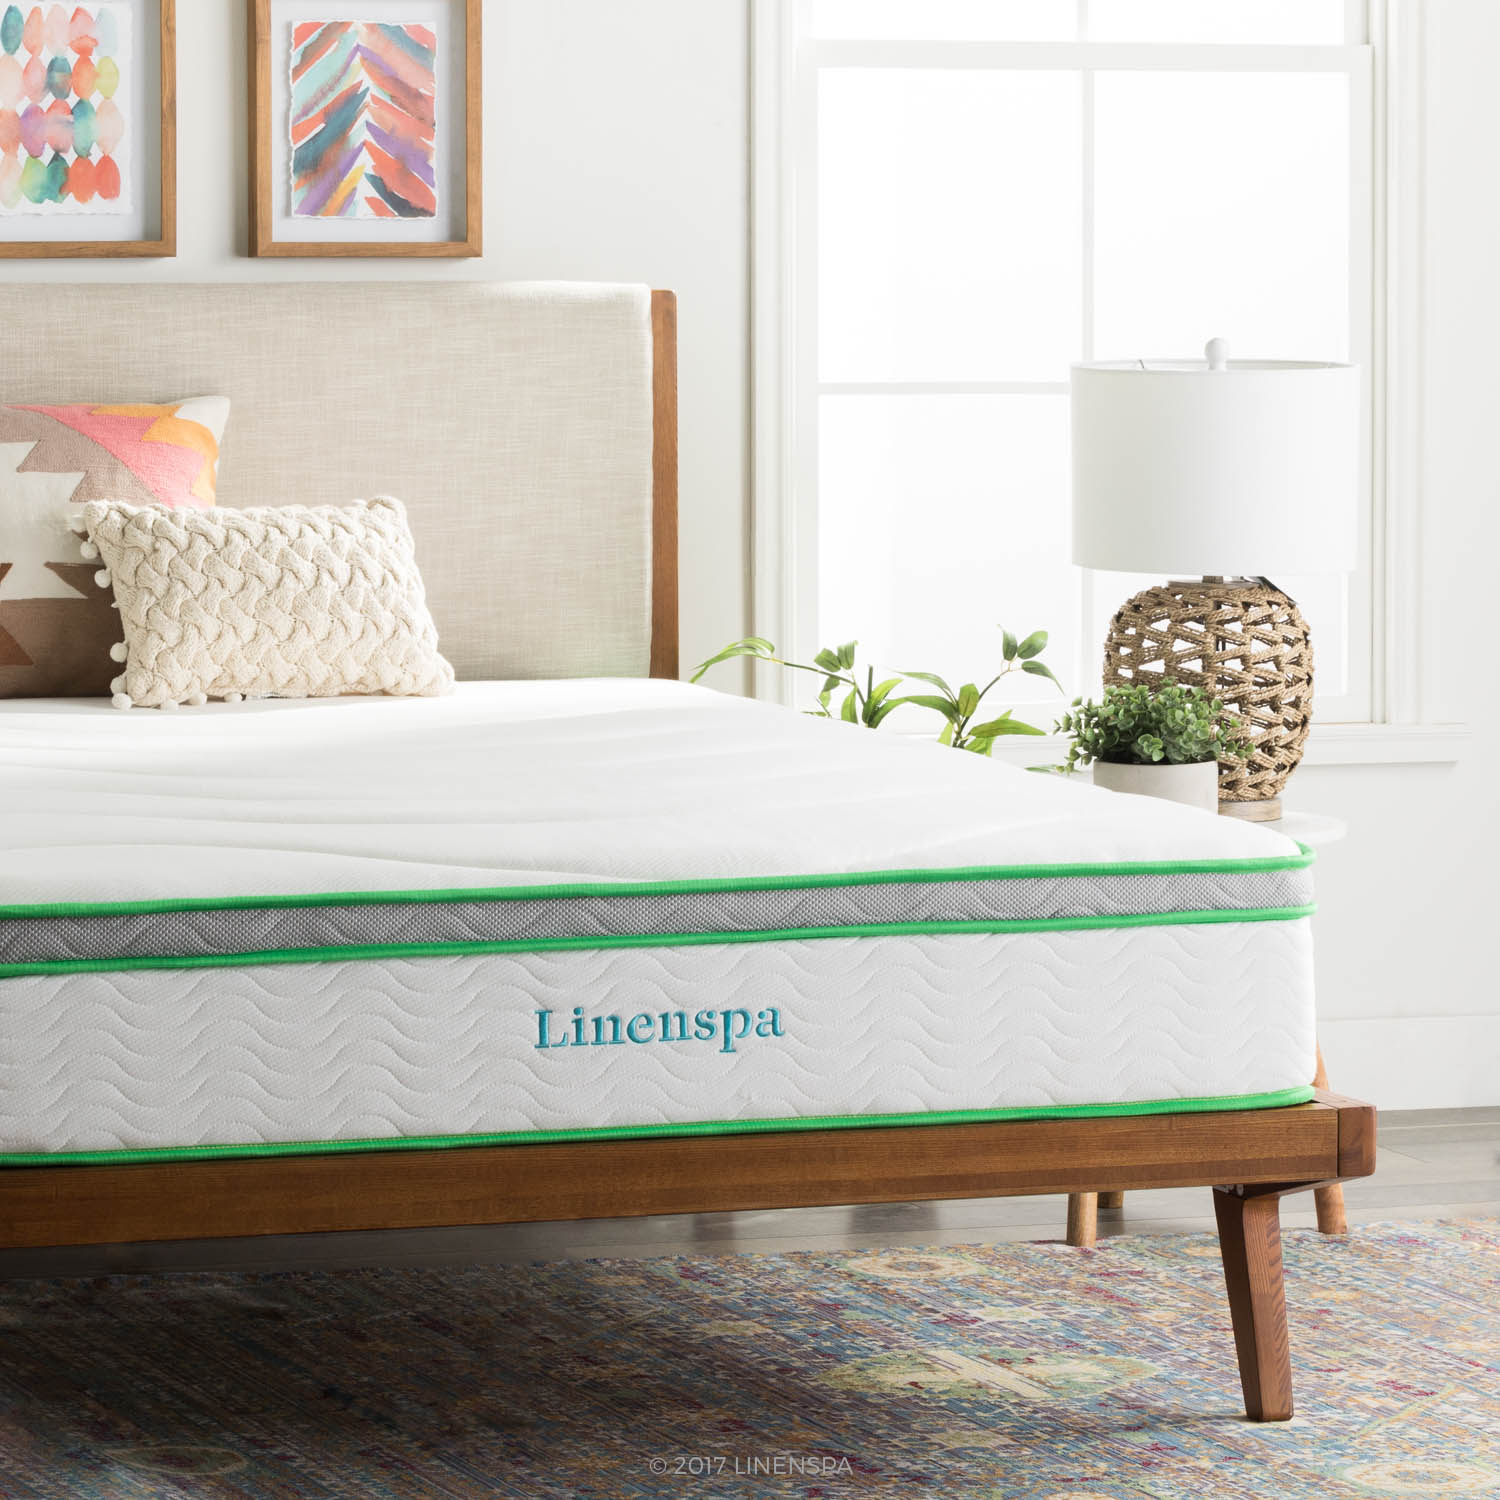 Linenspa 10 Inch Supportive and Responsive Hybrid Mattress